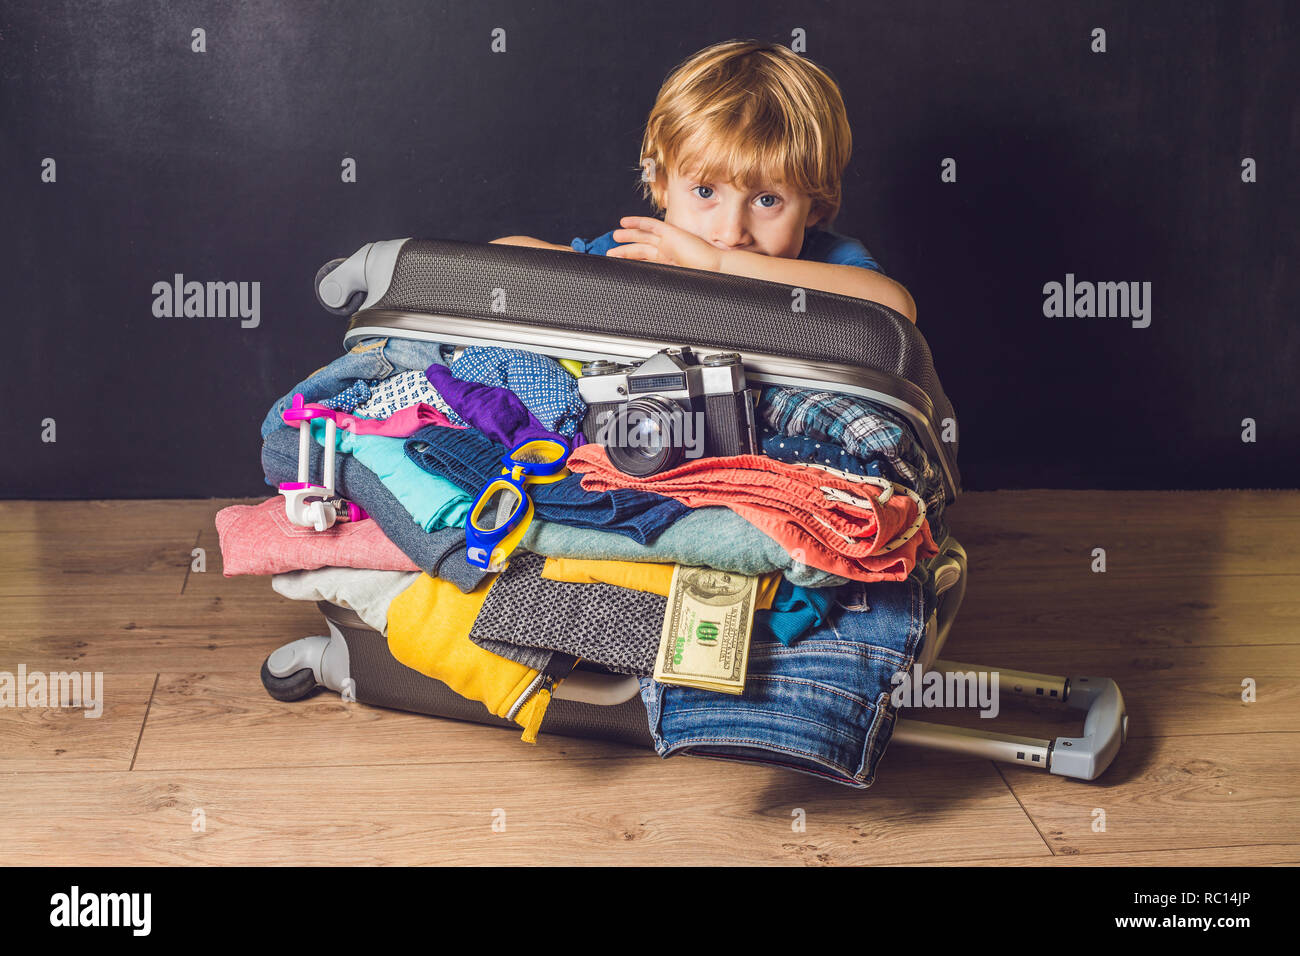 Baby boy and Travel Suitcase. Kid and Luggage Packed for Vacation Full of Clothes, Child and Family Trip - Stock Image